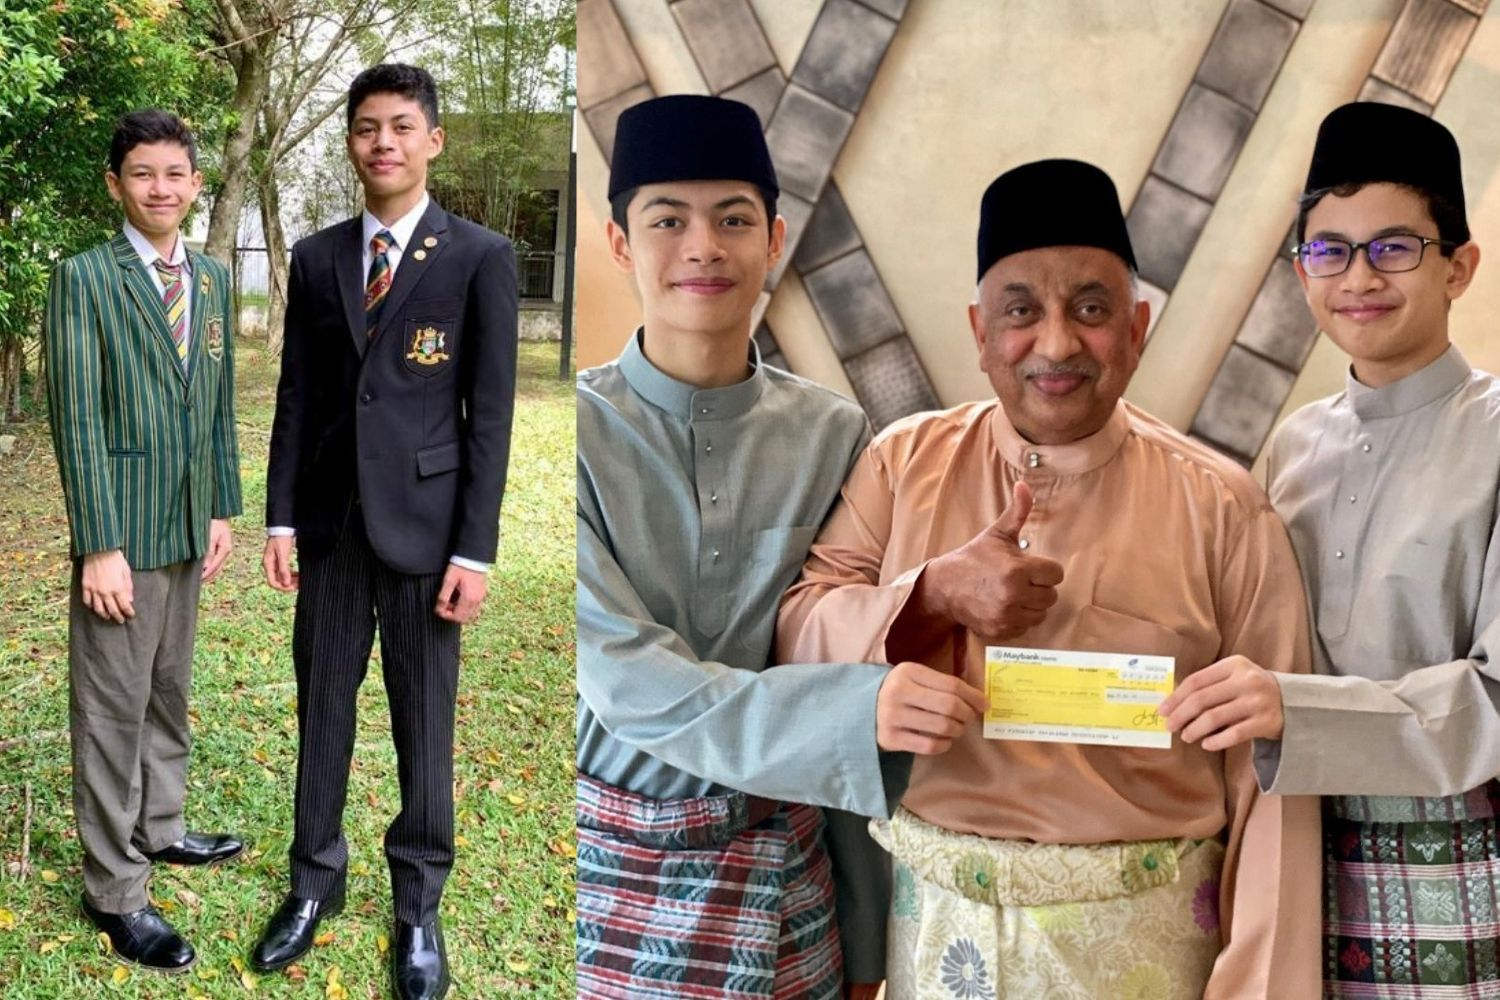 The 10 Ringgit Project: How 2 Teenagers Raised Over RM30,000 For The Underprivileged During A Pandemic